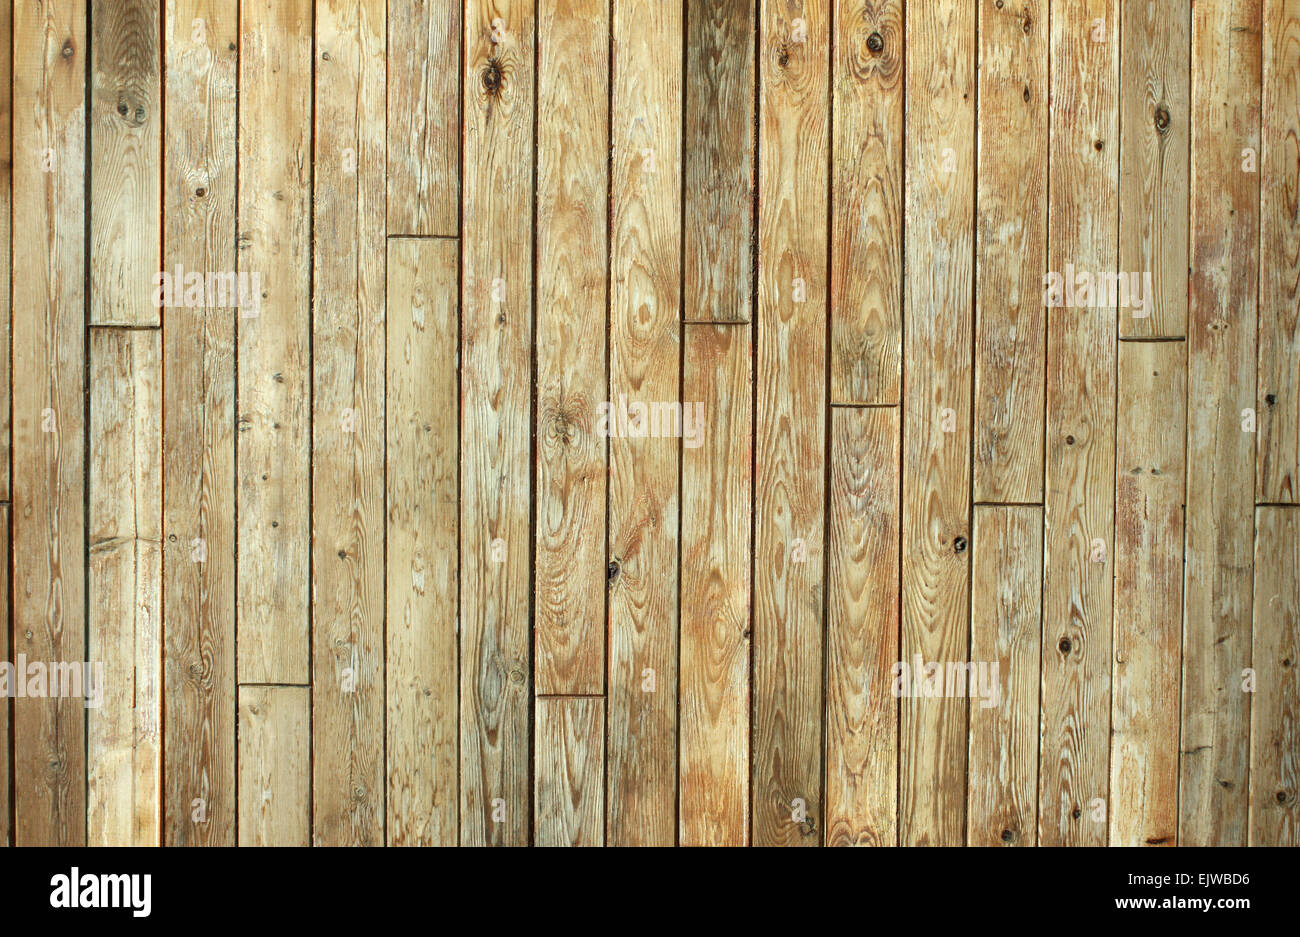 Dirty old planks of wood with knots. Great for texture background and design with wood. - Stock Image